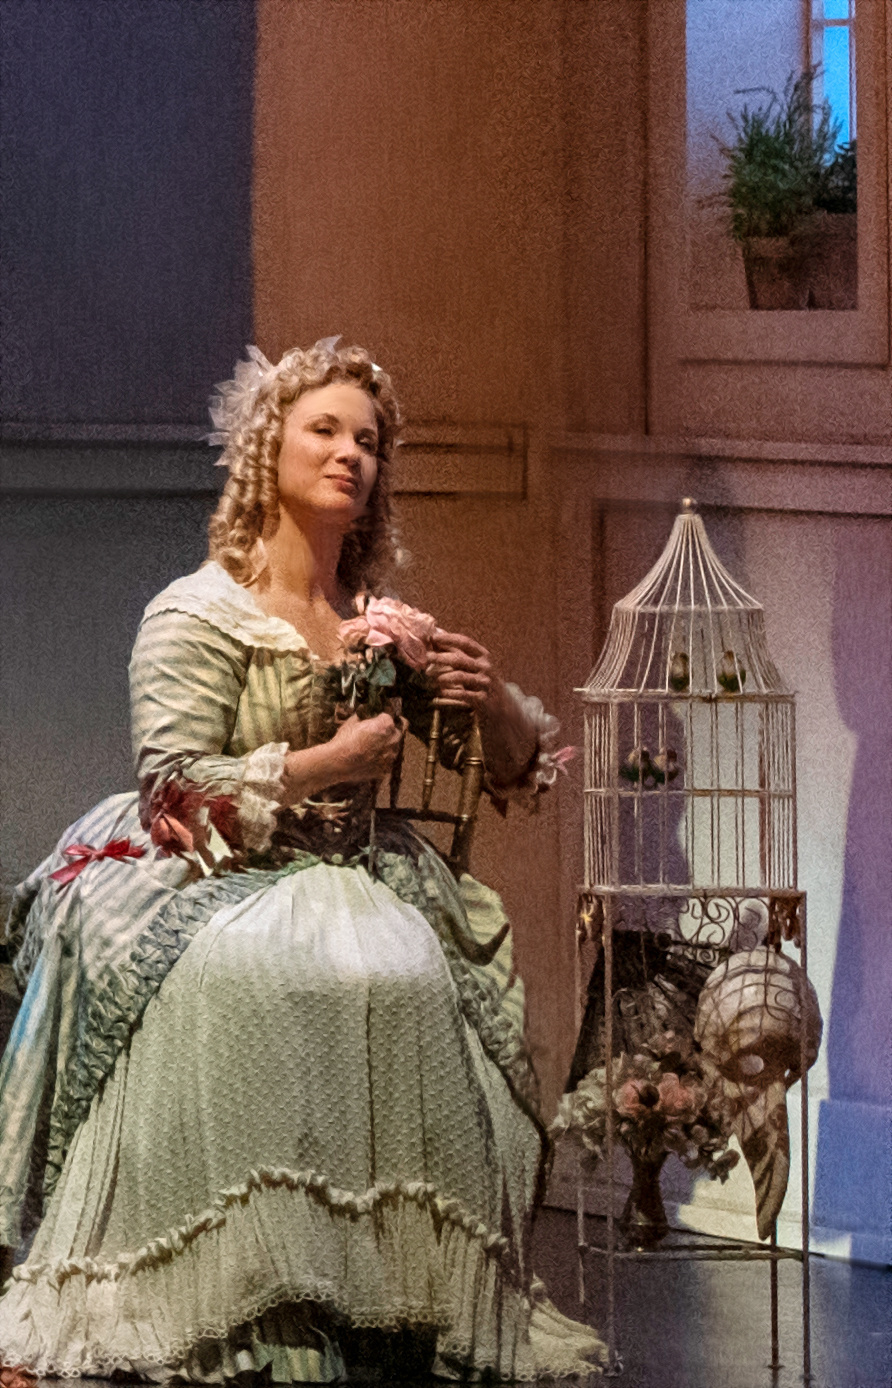 Lara Ciekiewicz in Gianni Schicchi. David Cooper Photography